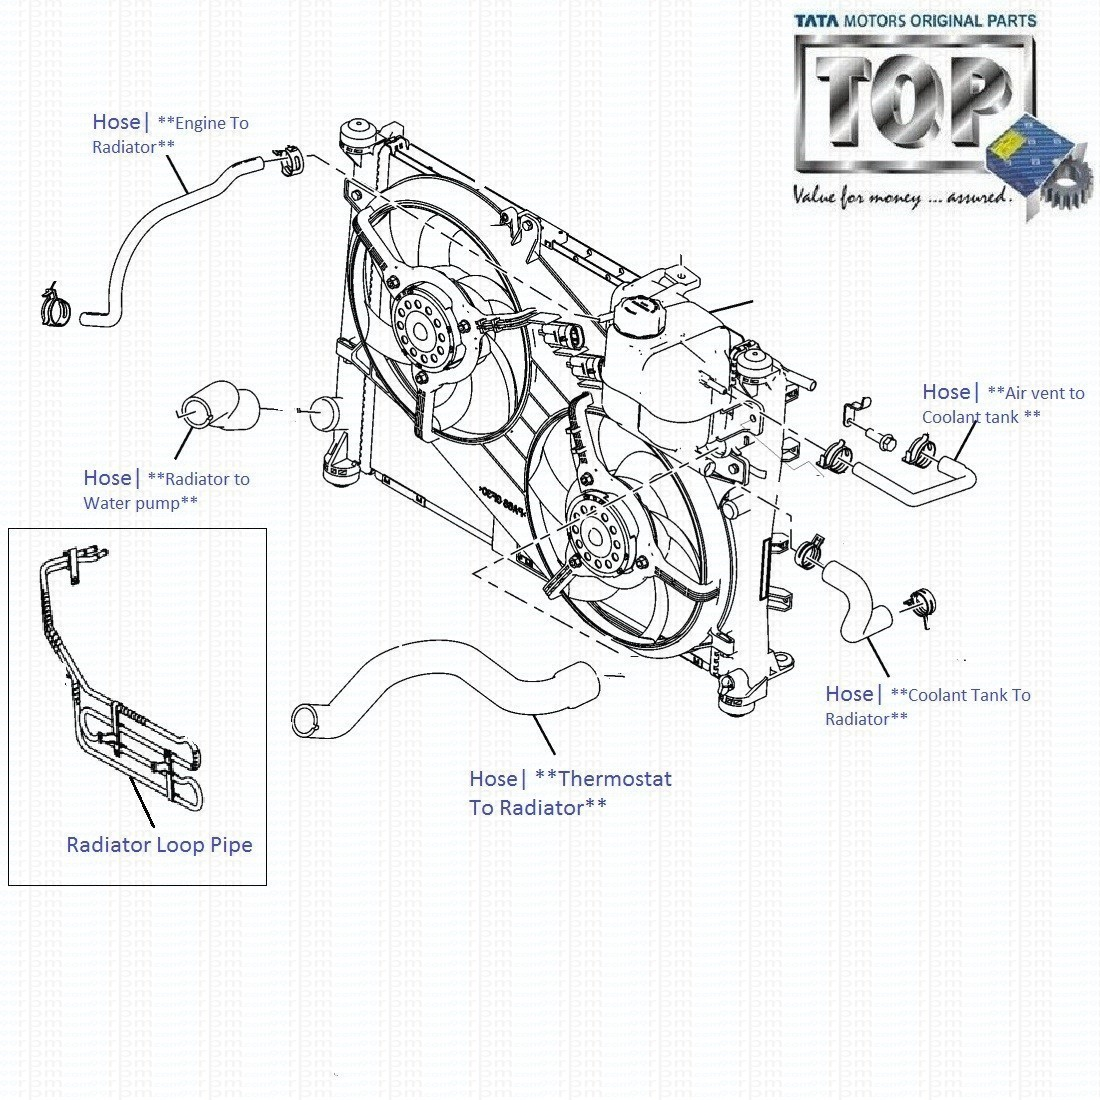 Location Of Radiator Fan Relay moreover Toyota Rav4 Charcoal Canister Location as well 1gqy1 Crank Position Sensor Located 2005 Magnum also 2017 Honda Fit Parts Diagram additionally 2007 Honda Odyssey Electrical Wiring Diagram. on 2003 honda cr v fuse box diagram